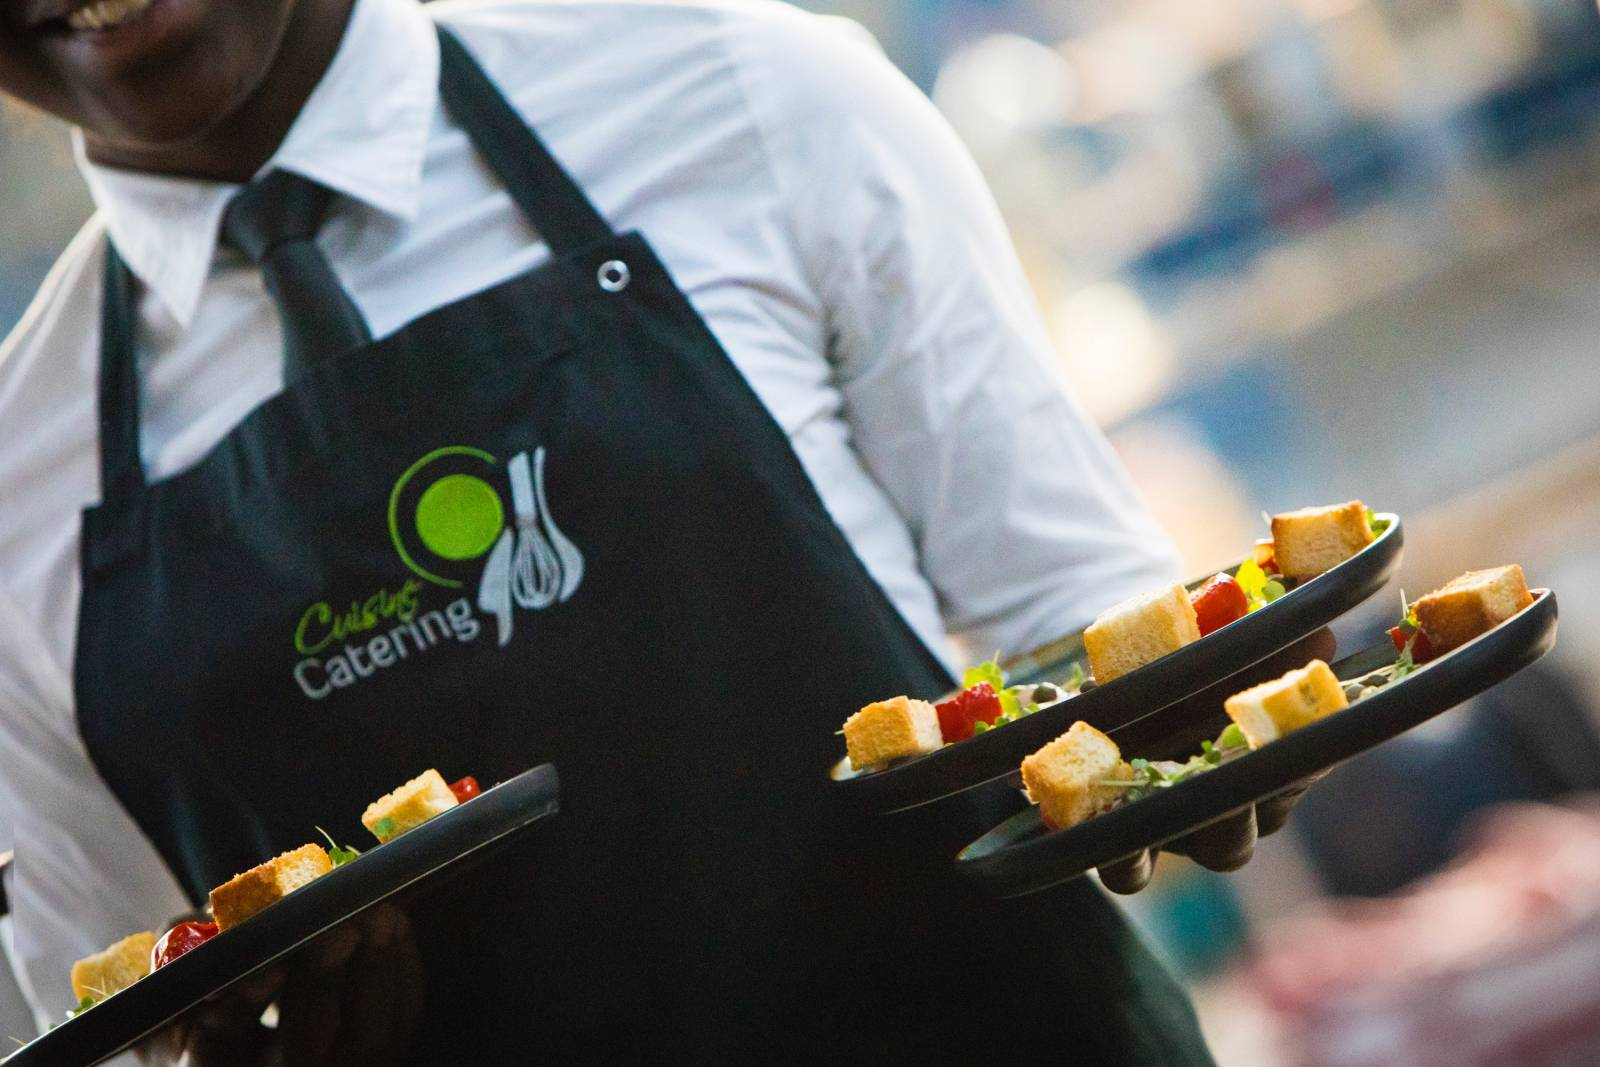 Cuisine Catering - Catering - Traiteur – House of Weddings - 8